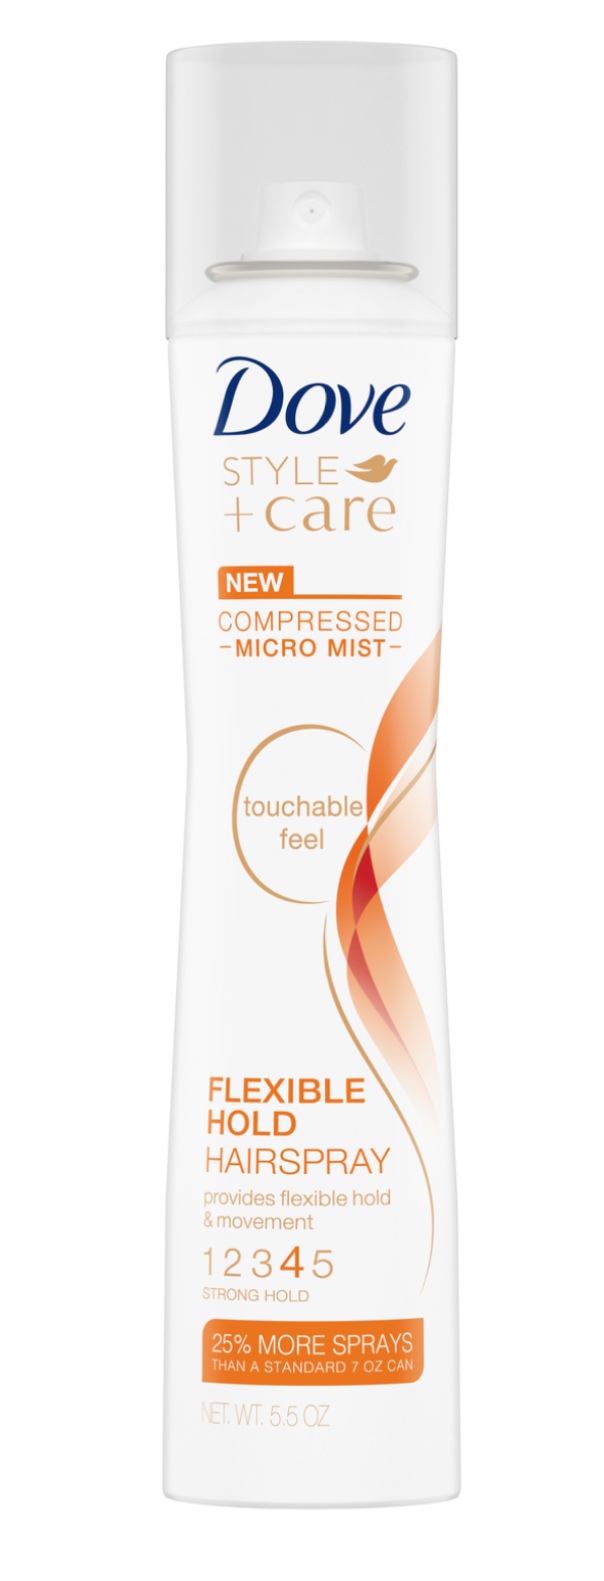 Dove Style + Care Flexible Hold Hairspray, 5.5 oz, #4 Compressed Micro Mist - $8.95